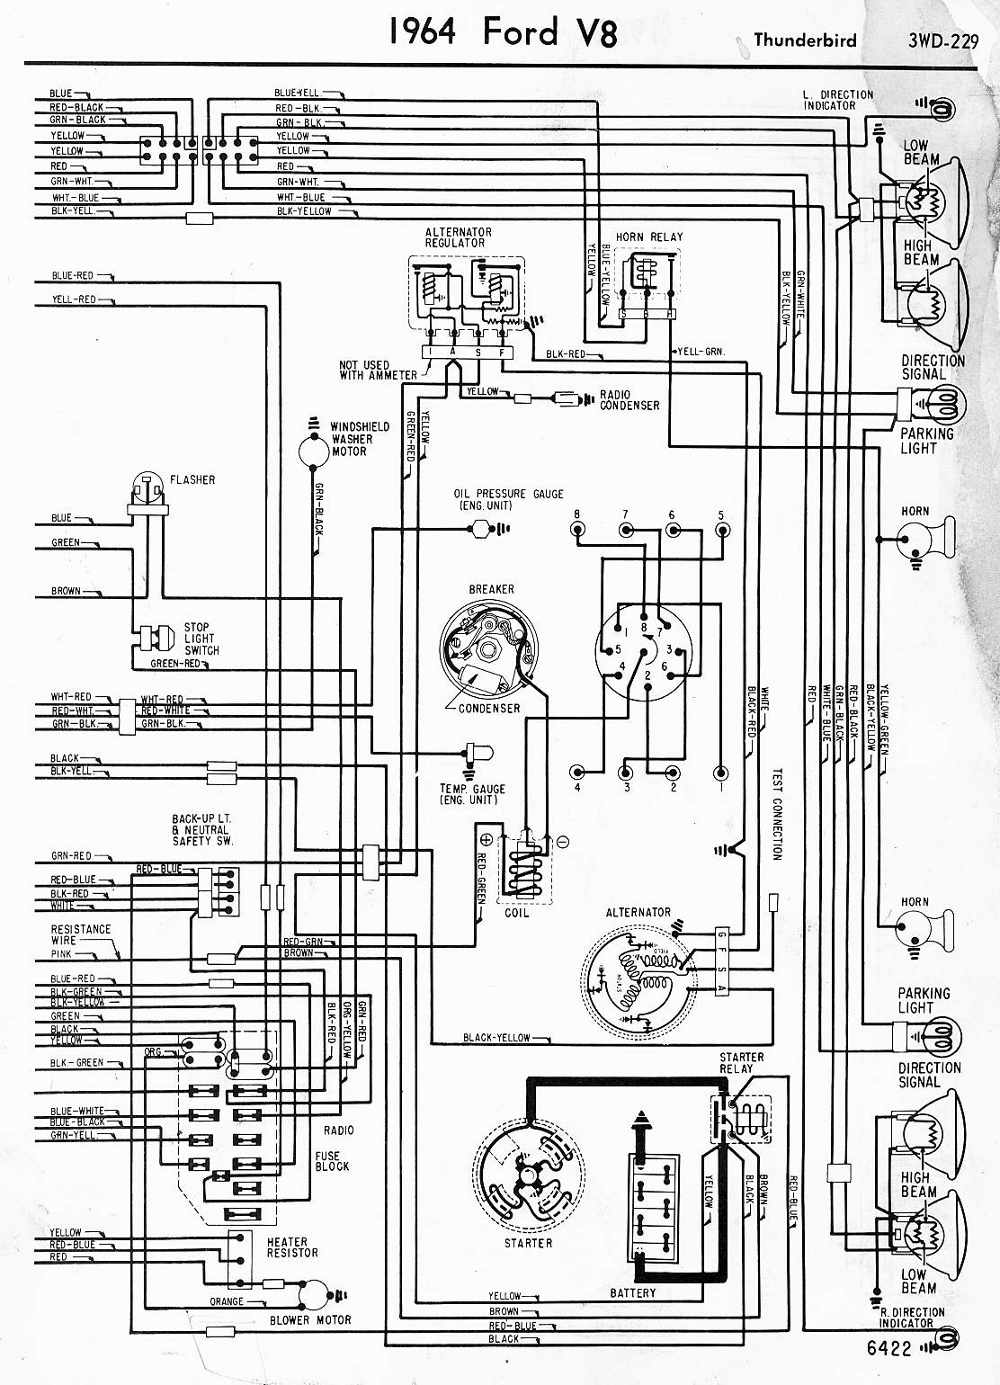 Free Electrical Drawing At For Personal Use 1986 F150 Fuel Gauge Wiring Diagram Picture 1000x1385 Diagrams Schematic Software Car Schematics